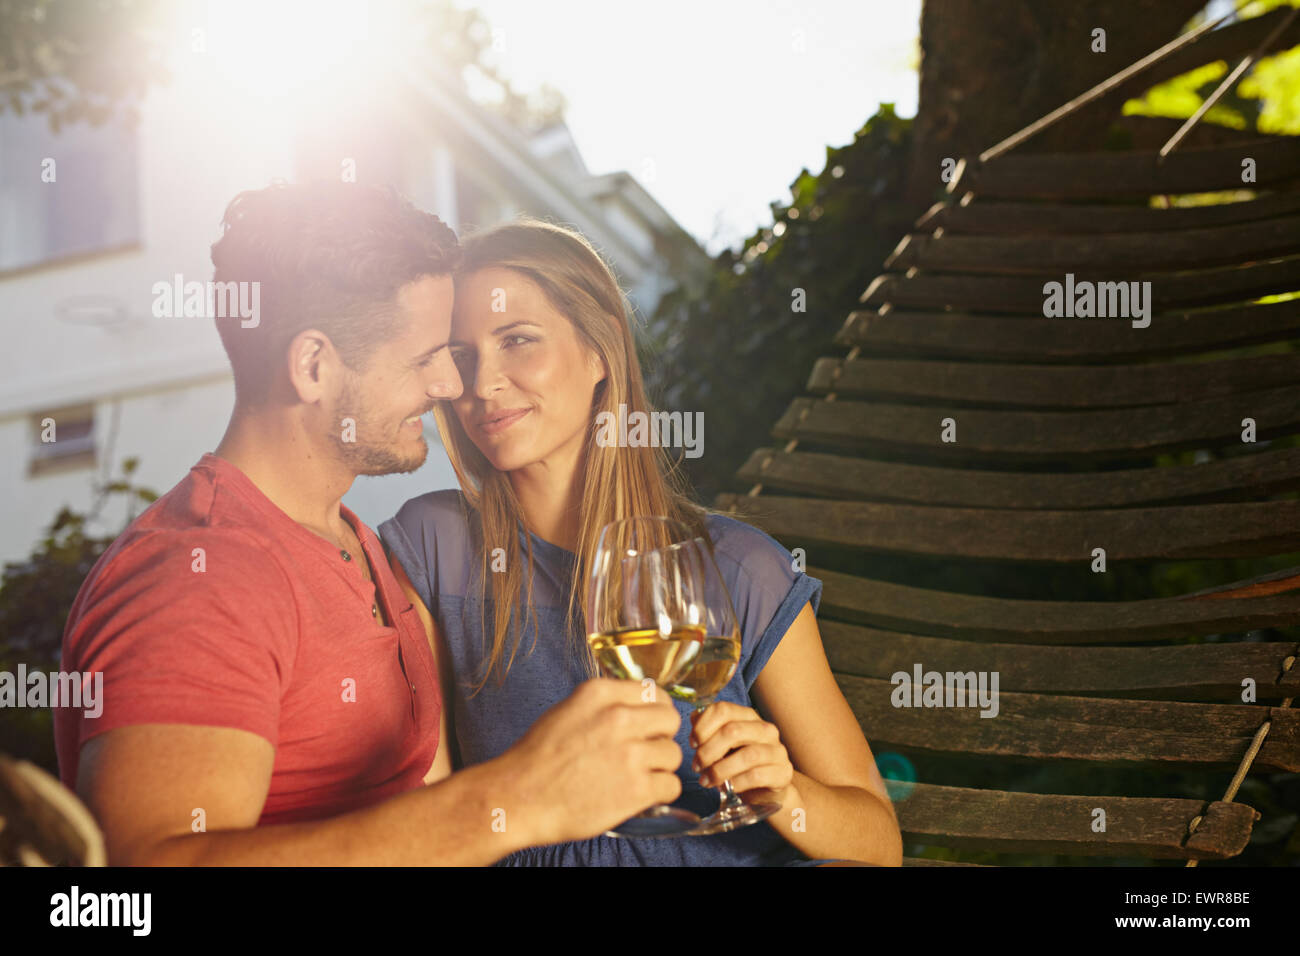 Romantic young couple sitting on garden hammock toasting wine. Loving young couple celebrating with a glass of wine - Stock Image